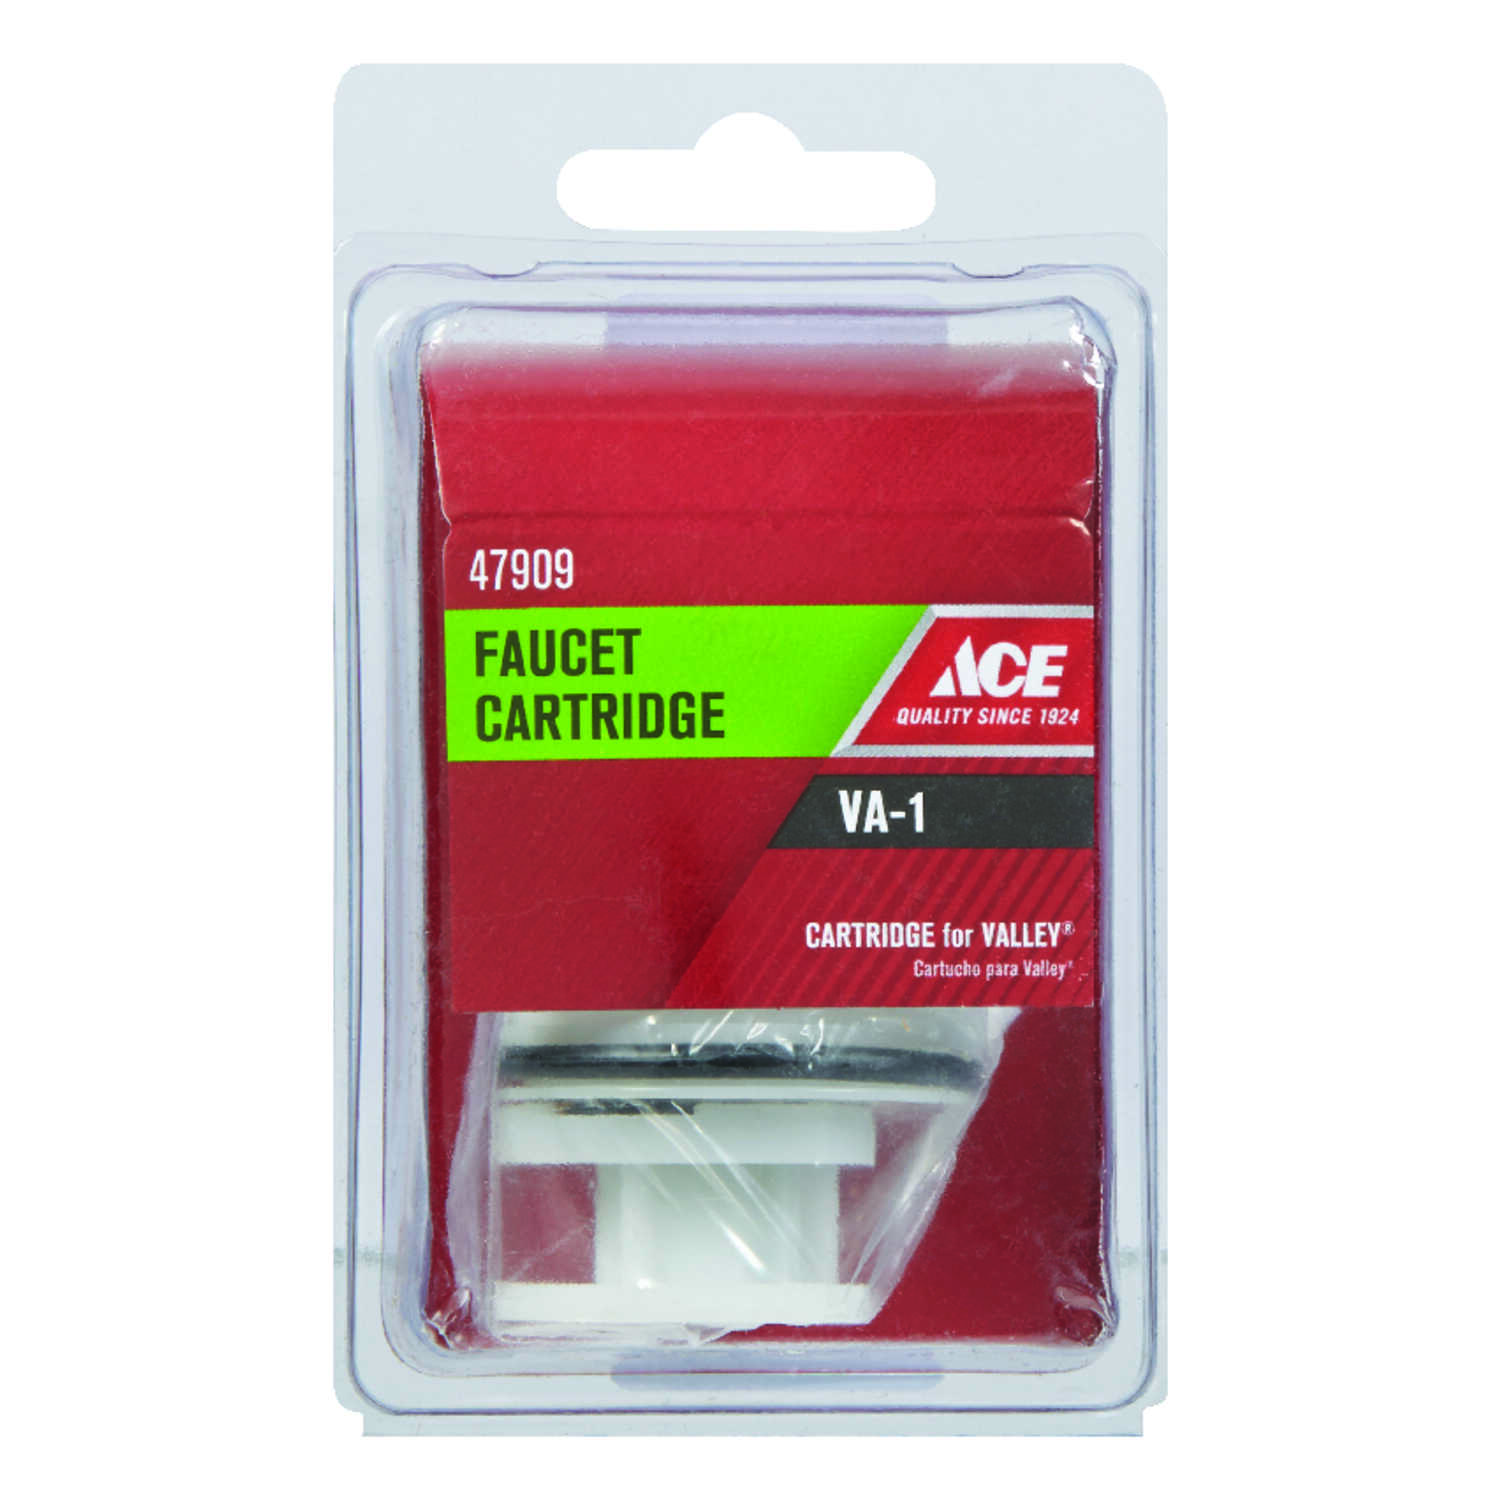 Ace  Hot and Cold  VA-1  Faucet Cartridge  For Valley